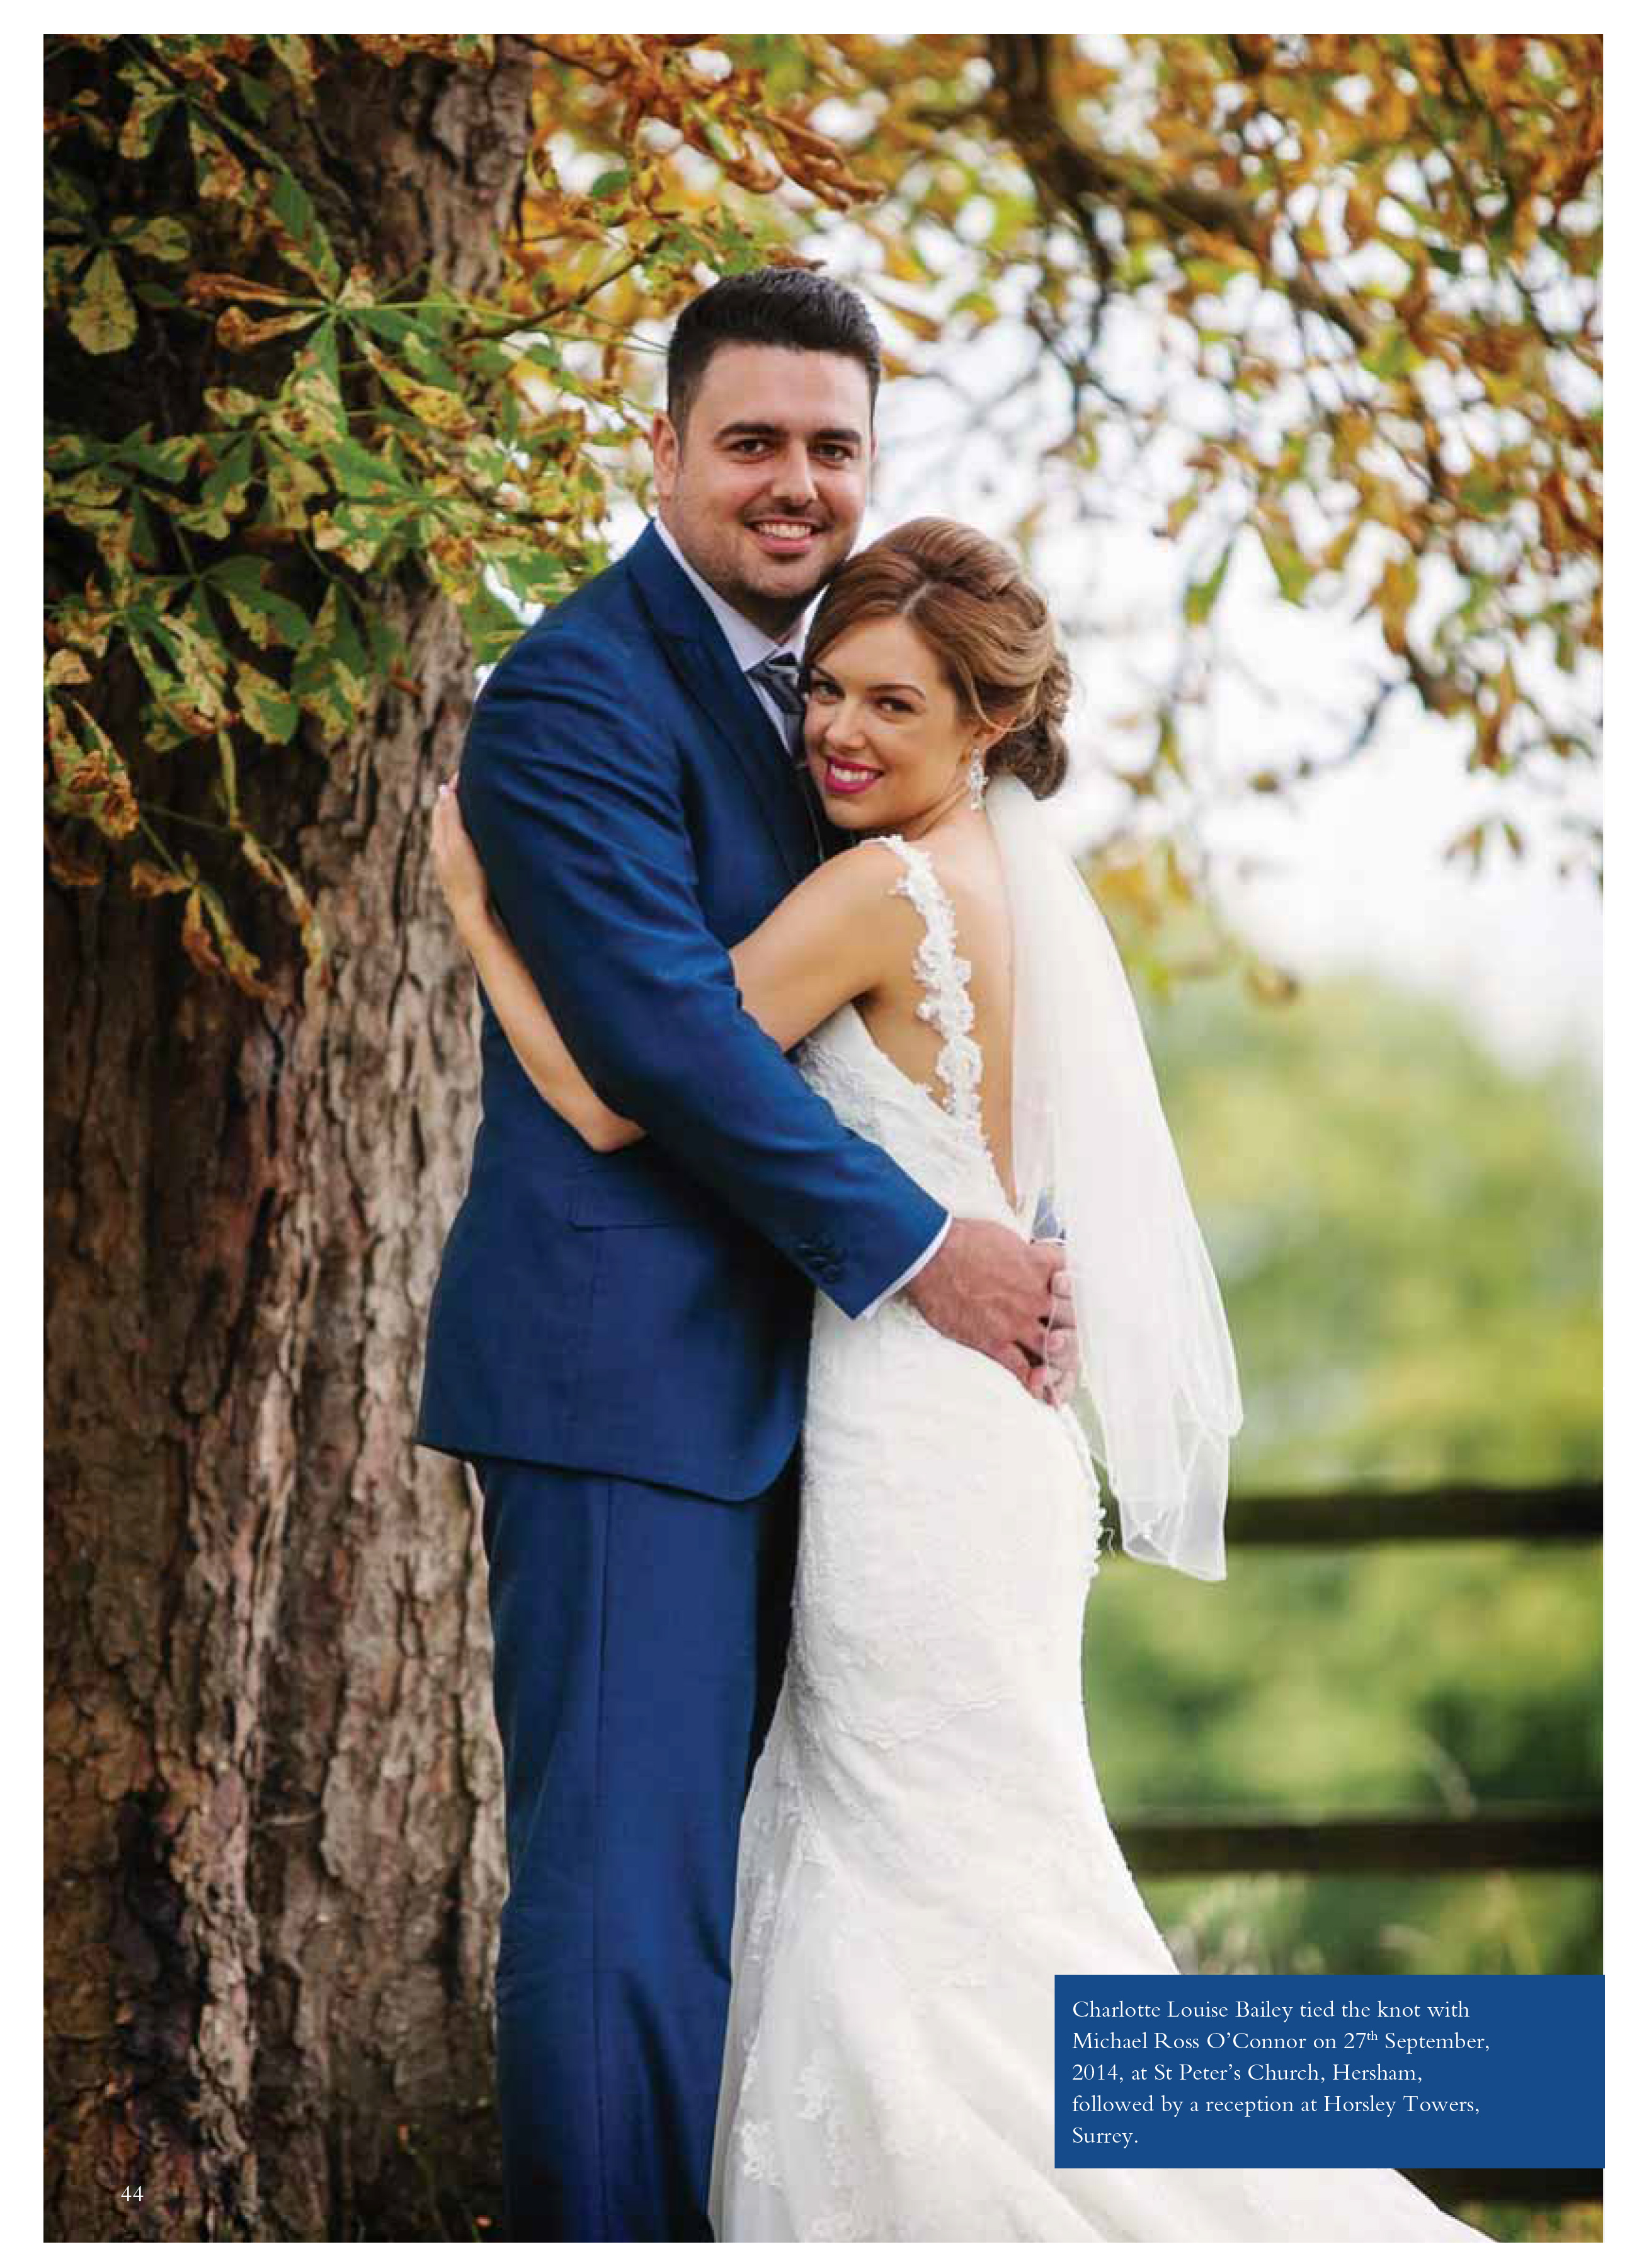 Horsley Park Wedding - Your Surrey Wedding Magazine - Denise Winter Photography06